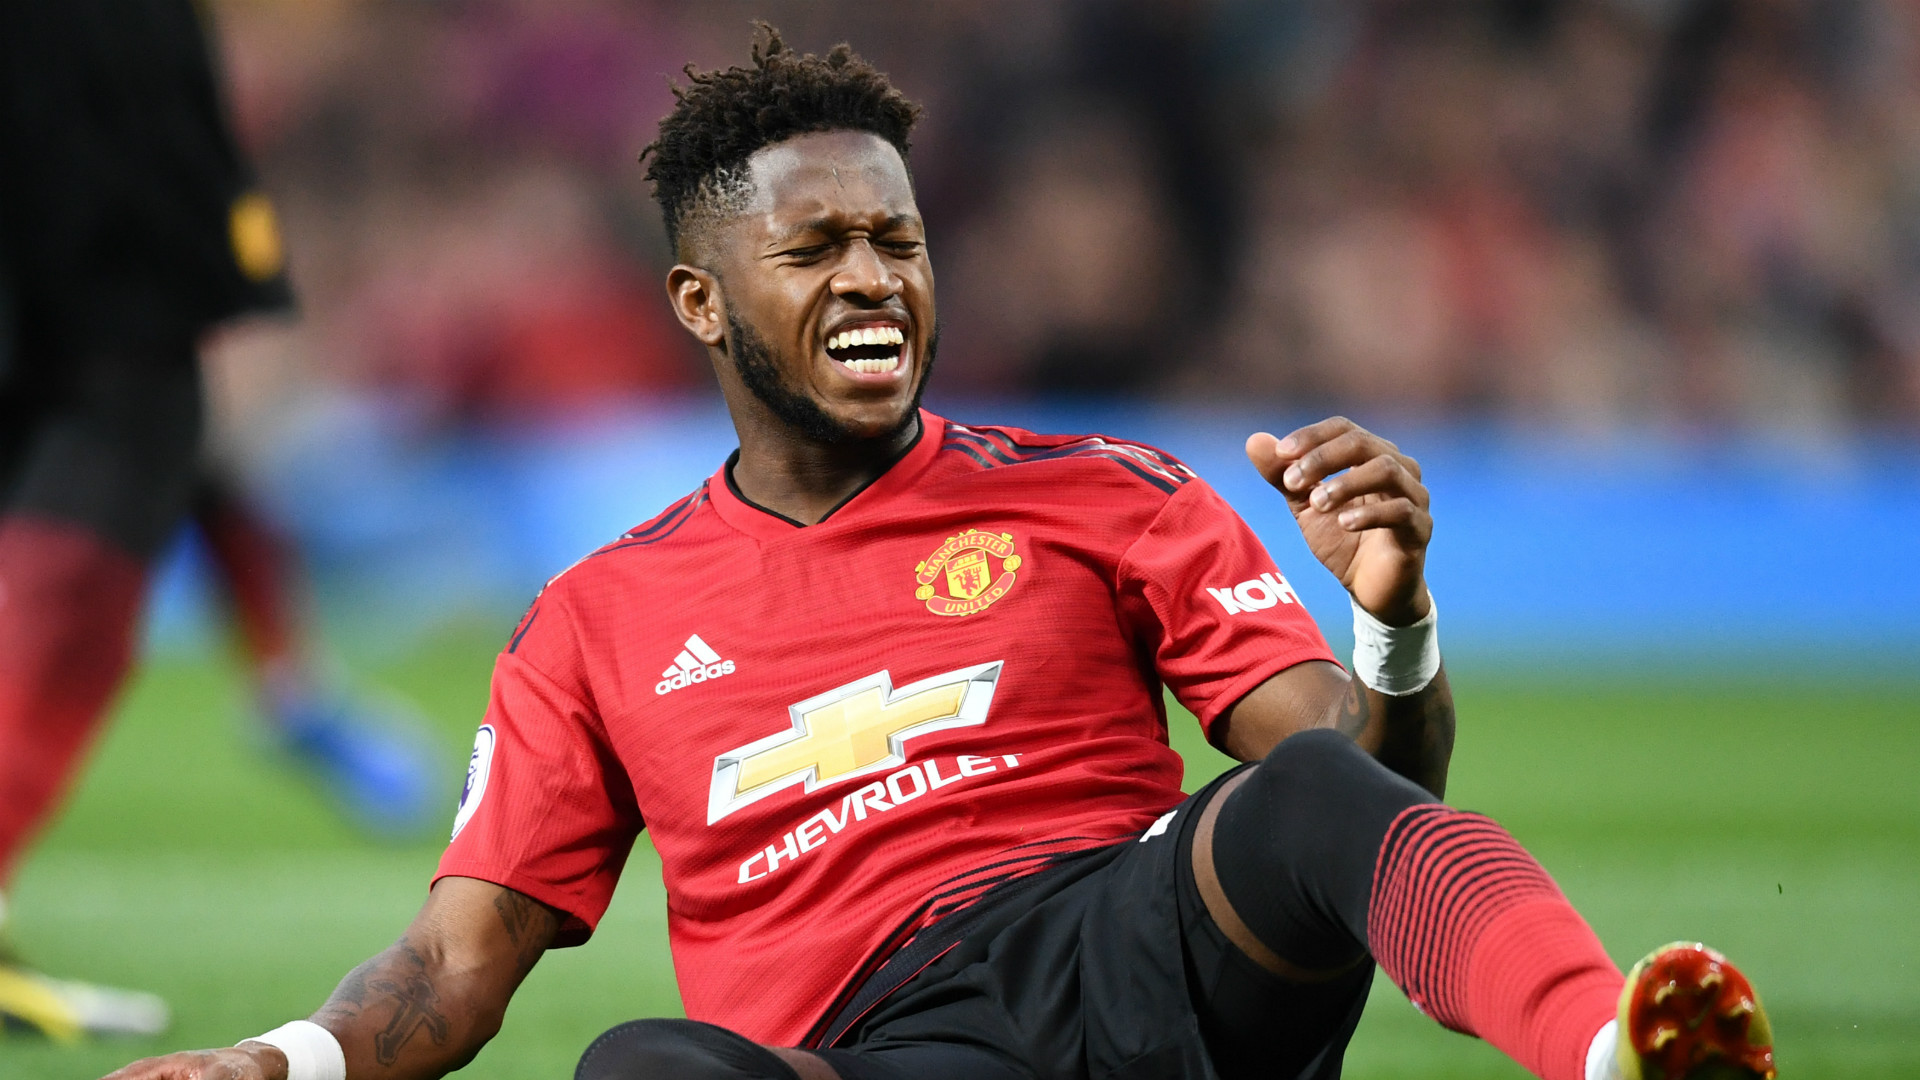 Fred admits to Man Utd flop after £52m move but expects collective improvement at Old Trafford